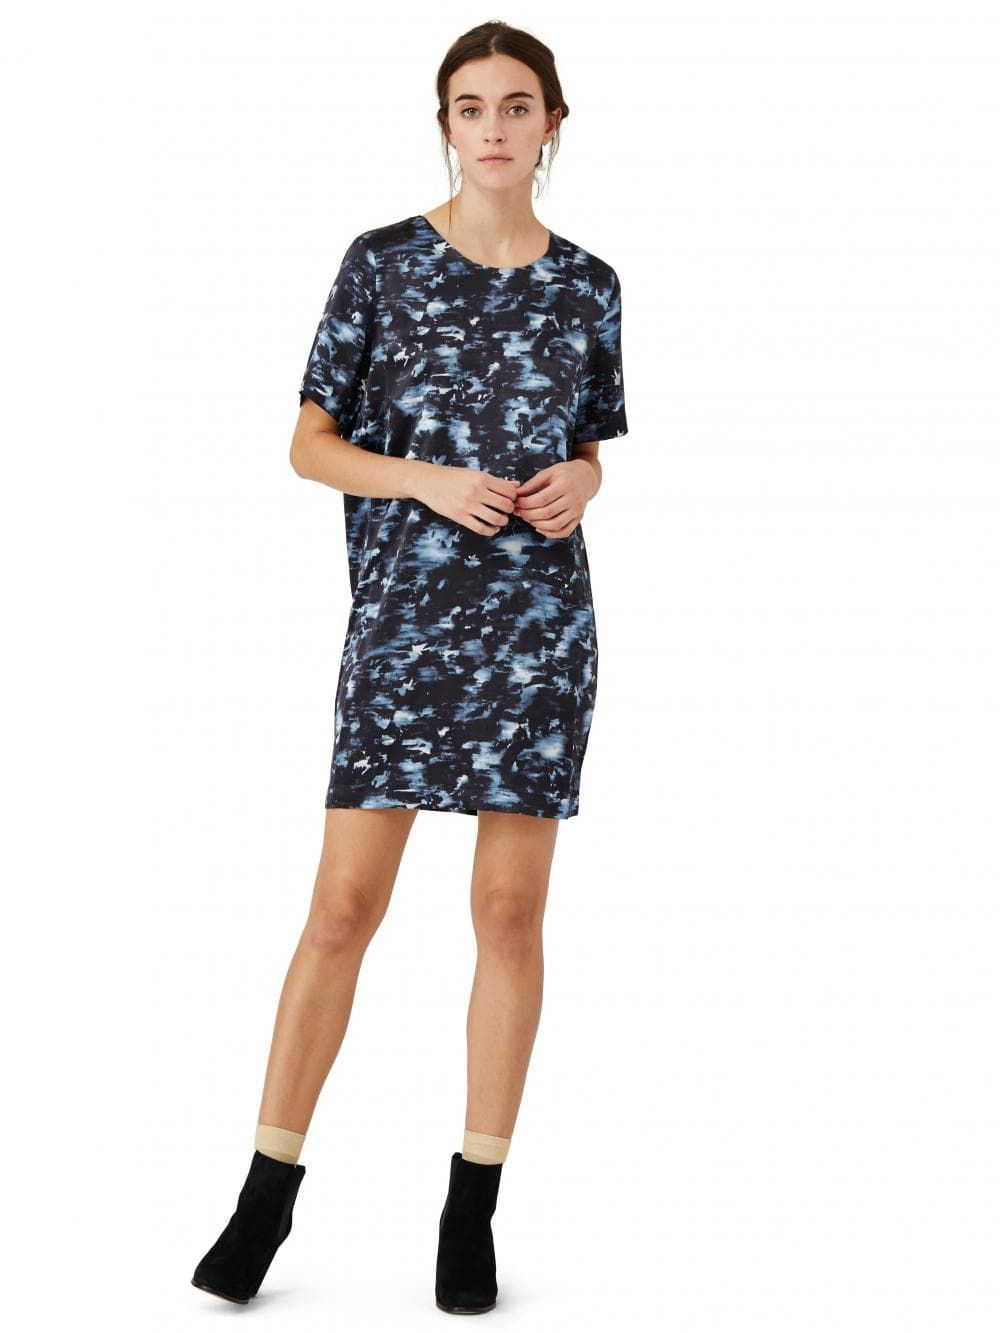 A silk dress that works as nicely as daytime wear as it does for an